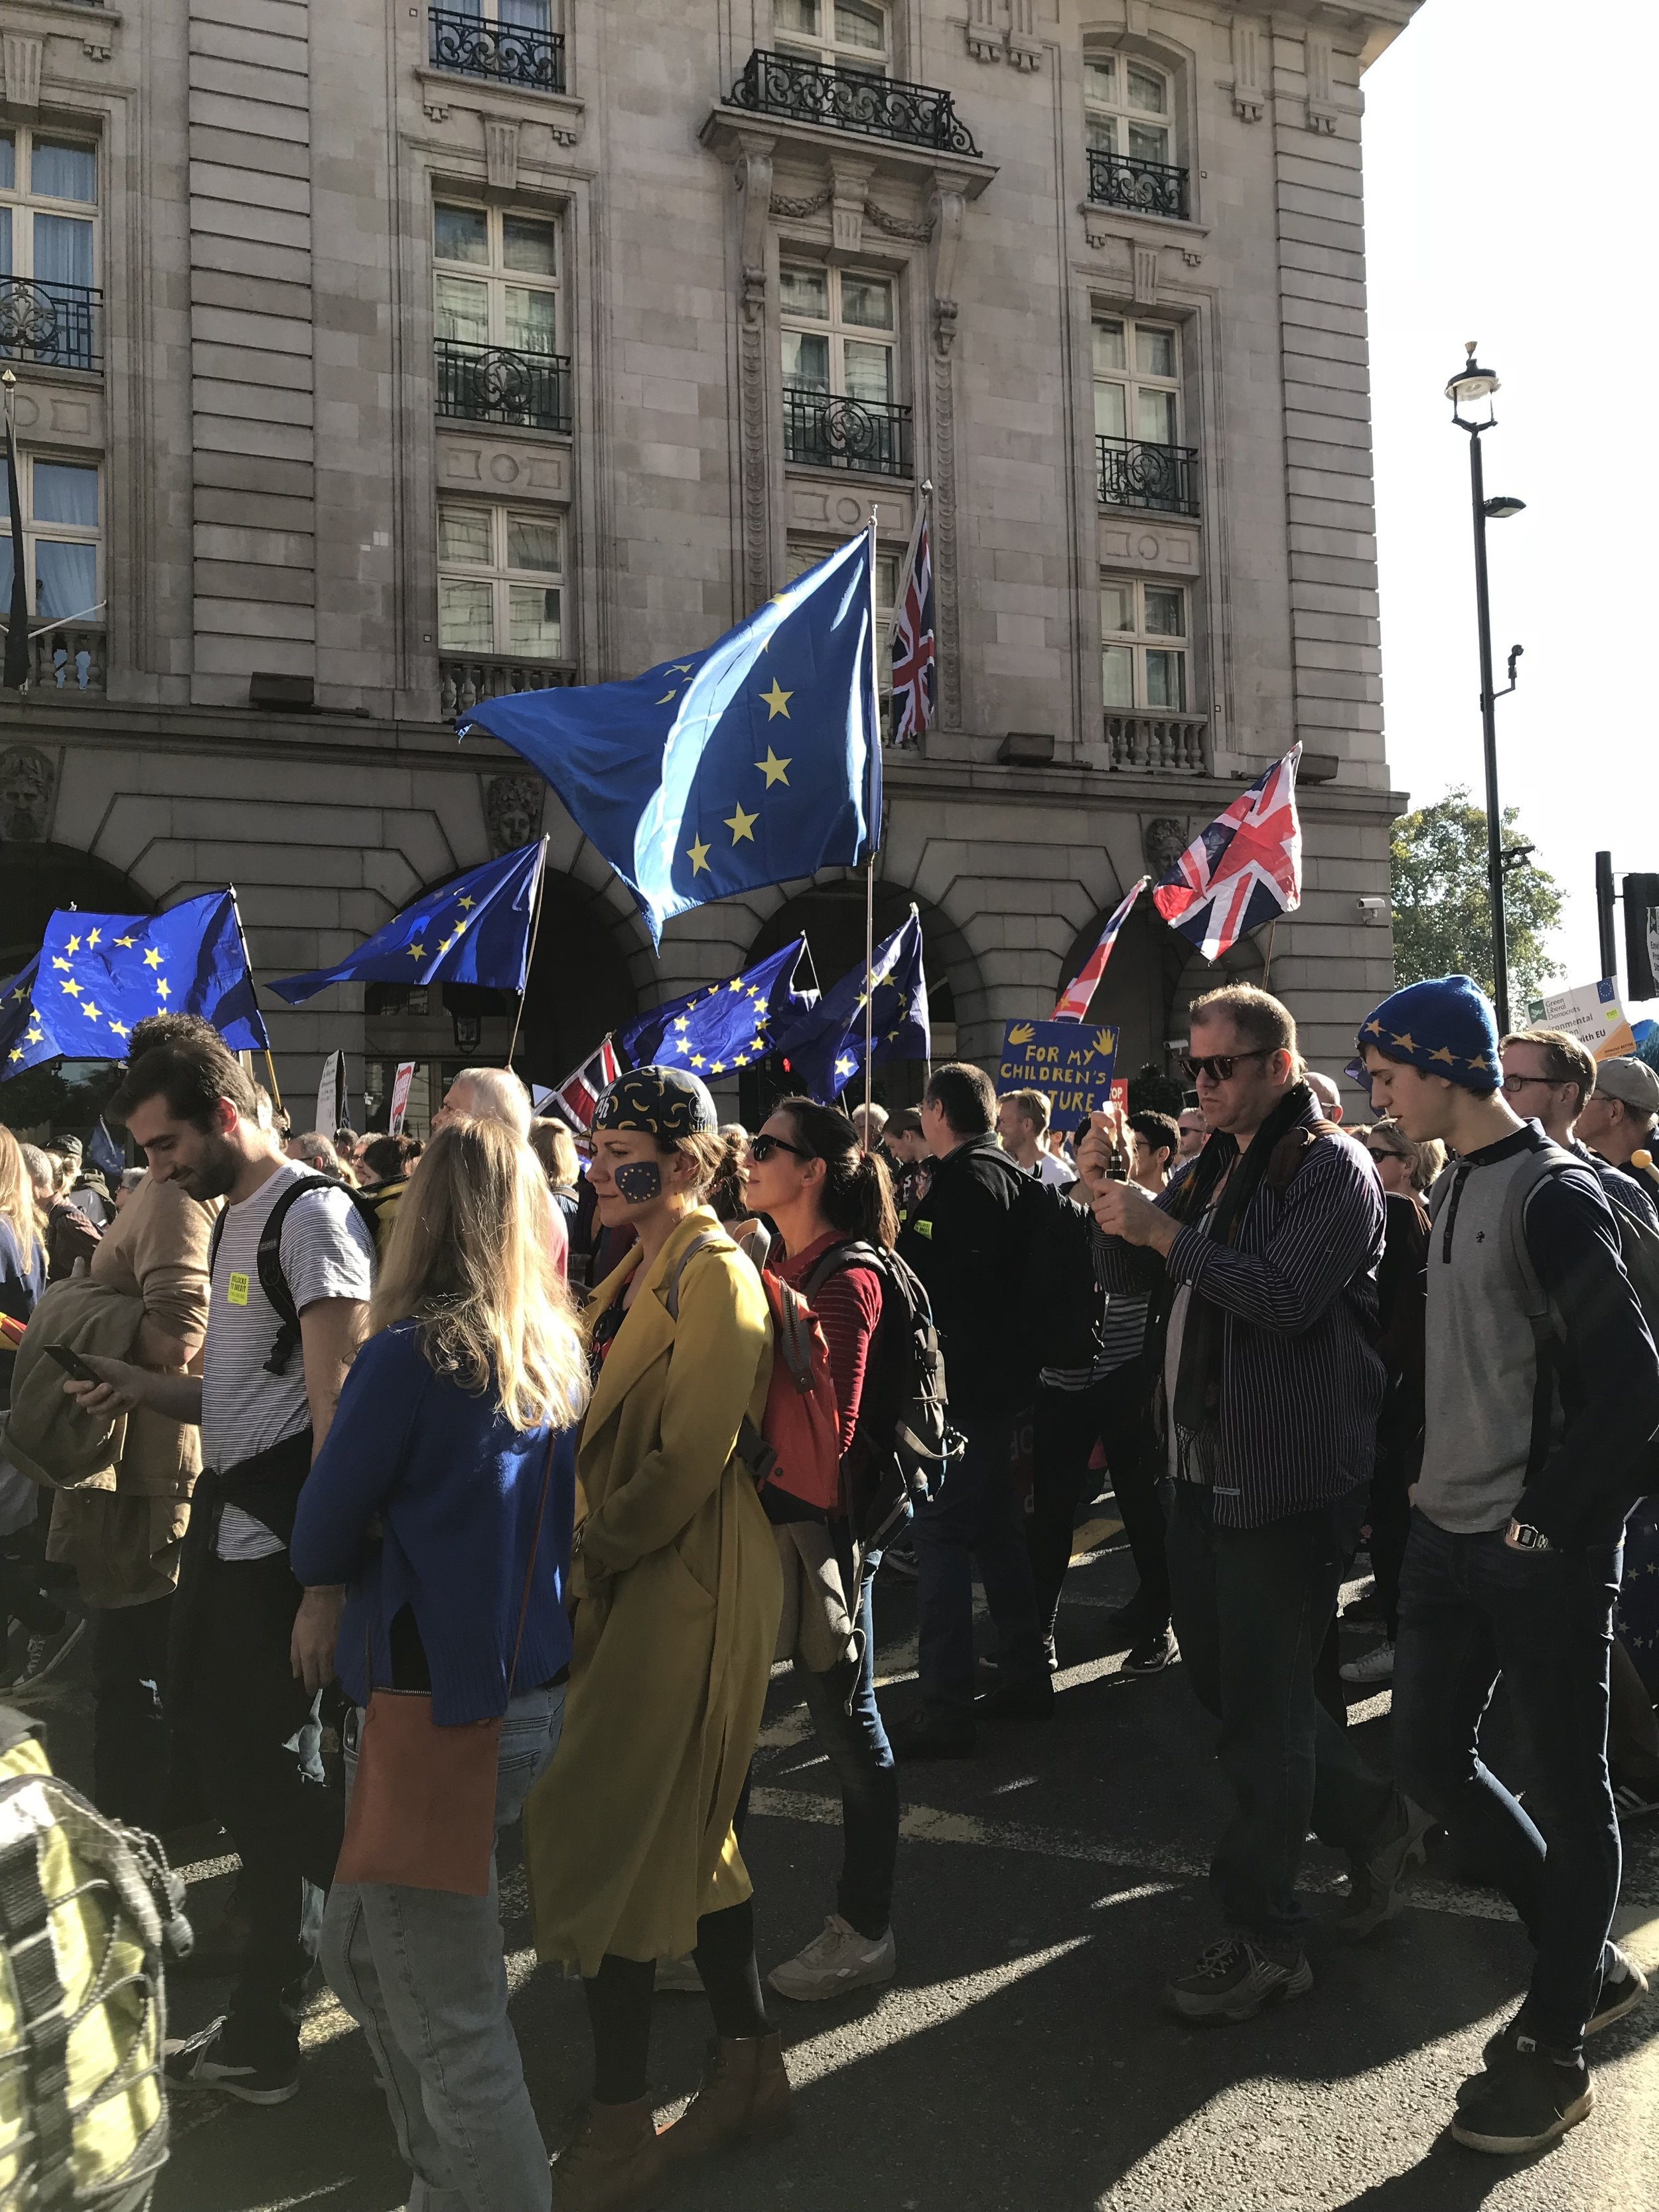 The People's March in London, October 20, 2018. They're demanding a revote on Brexit and believe remaining in the E.U. is best for the country.